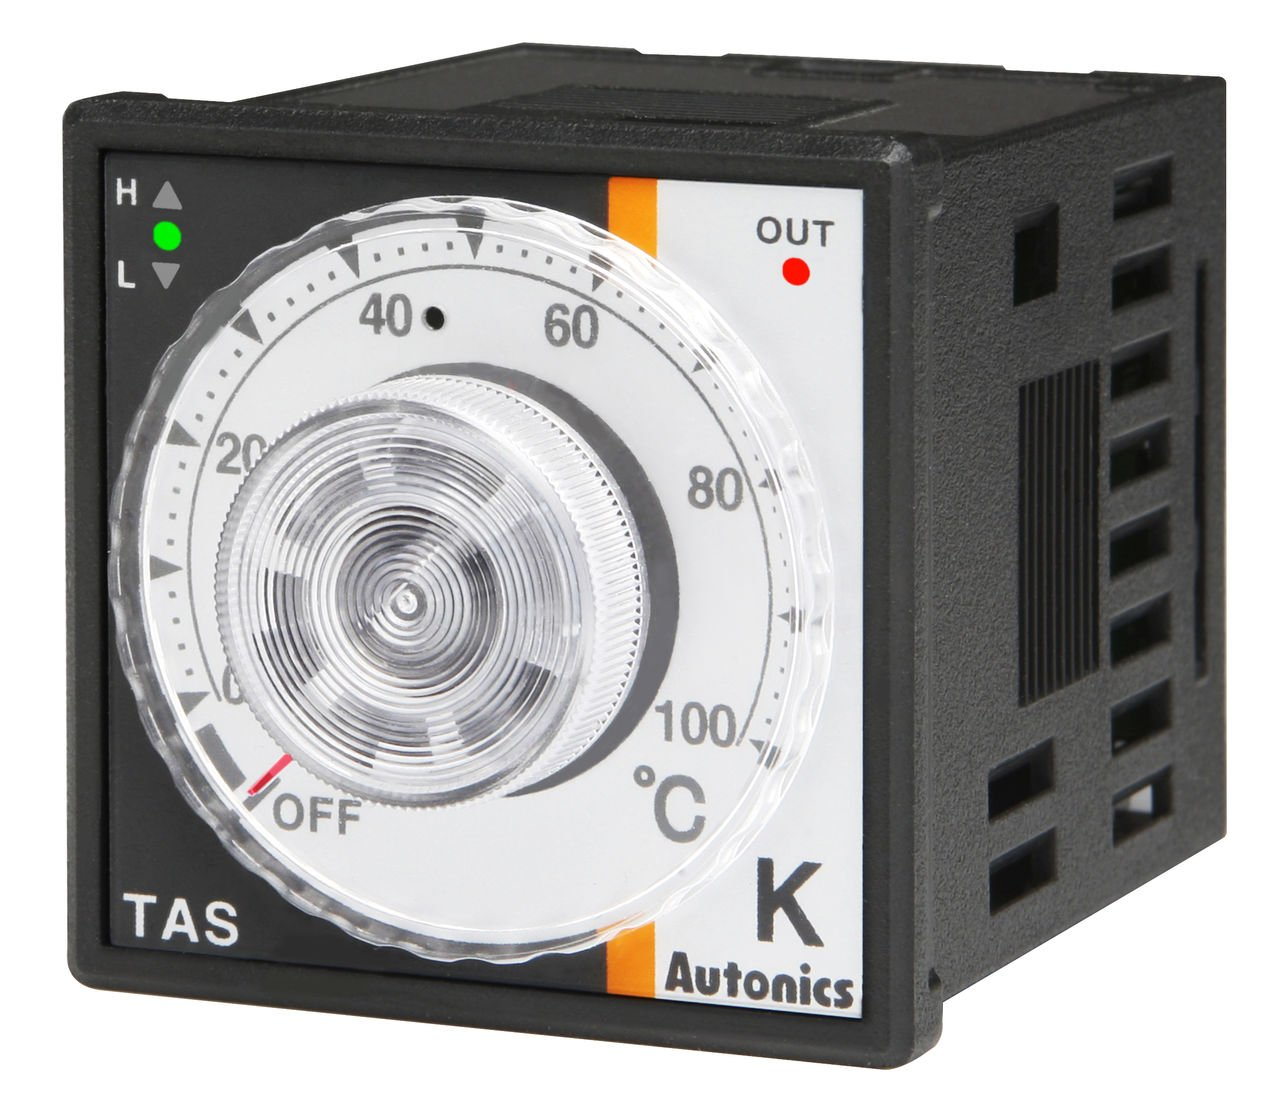 Autonics TAS-B4RJ4F Temp Control, 1/16 DIN, Analog, PID Control, Relay Output, J Thermocouple, 32 to 752 F, 100-240 VAC by Autonics USA, Inc